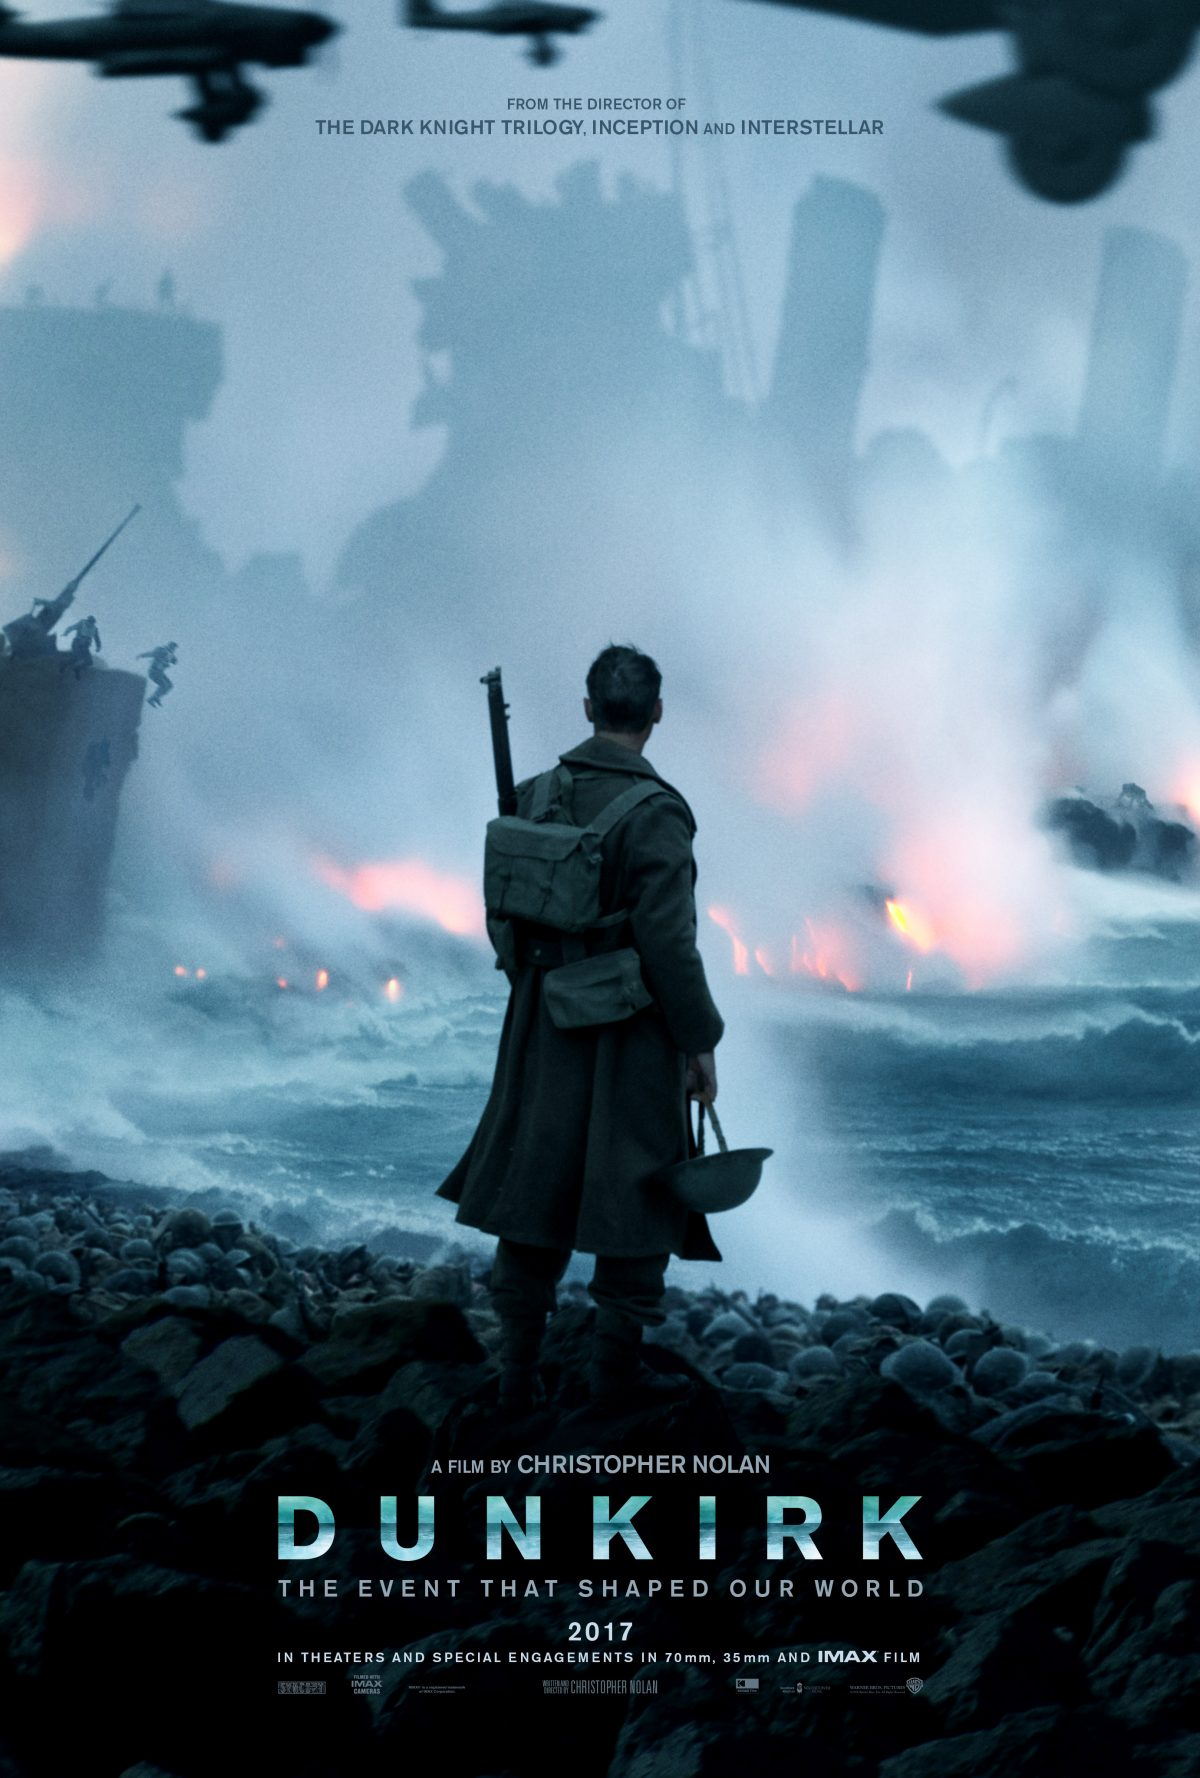 New Teaser Trailer and Poster released for Dunkirk